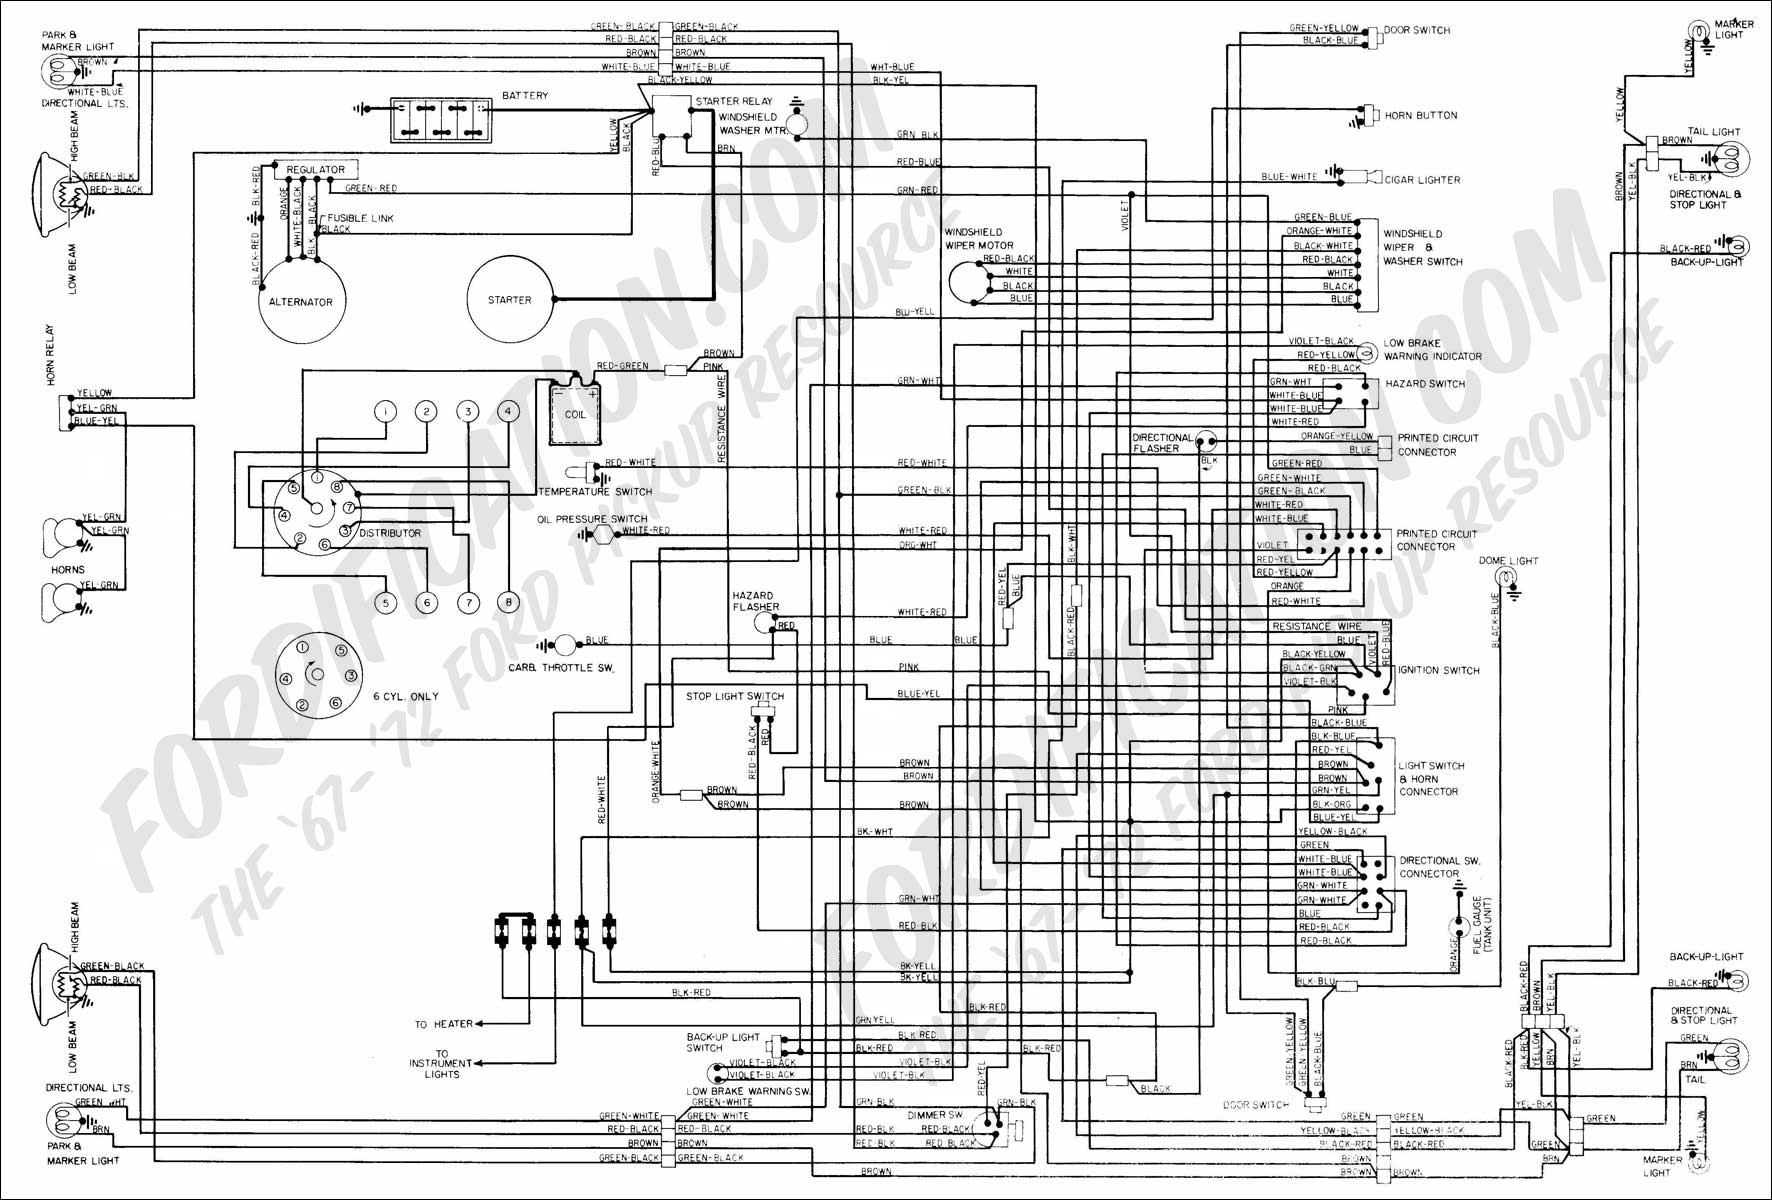 ford f 150 wiring diagram 1972 v8 alternator ford truck technical drawings and schematics - section h ... 1988 ford f 150 wiring diagram